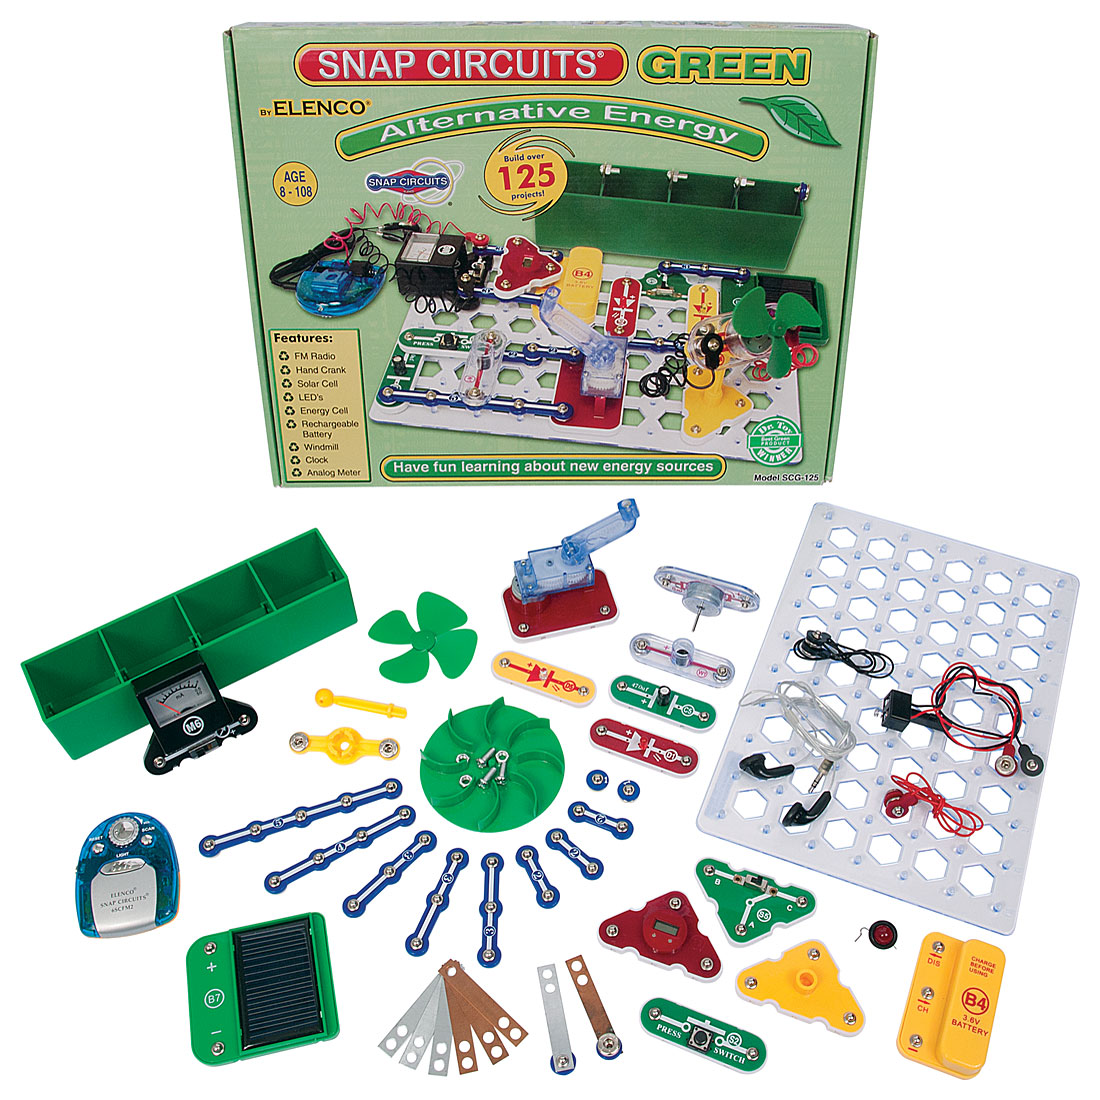 Home > physical science > electronics > kits > snap circuits green ...